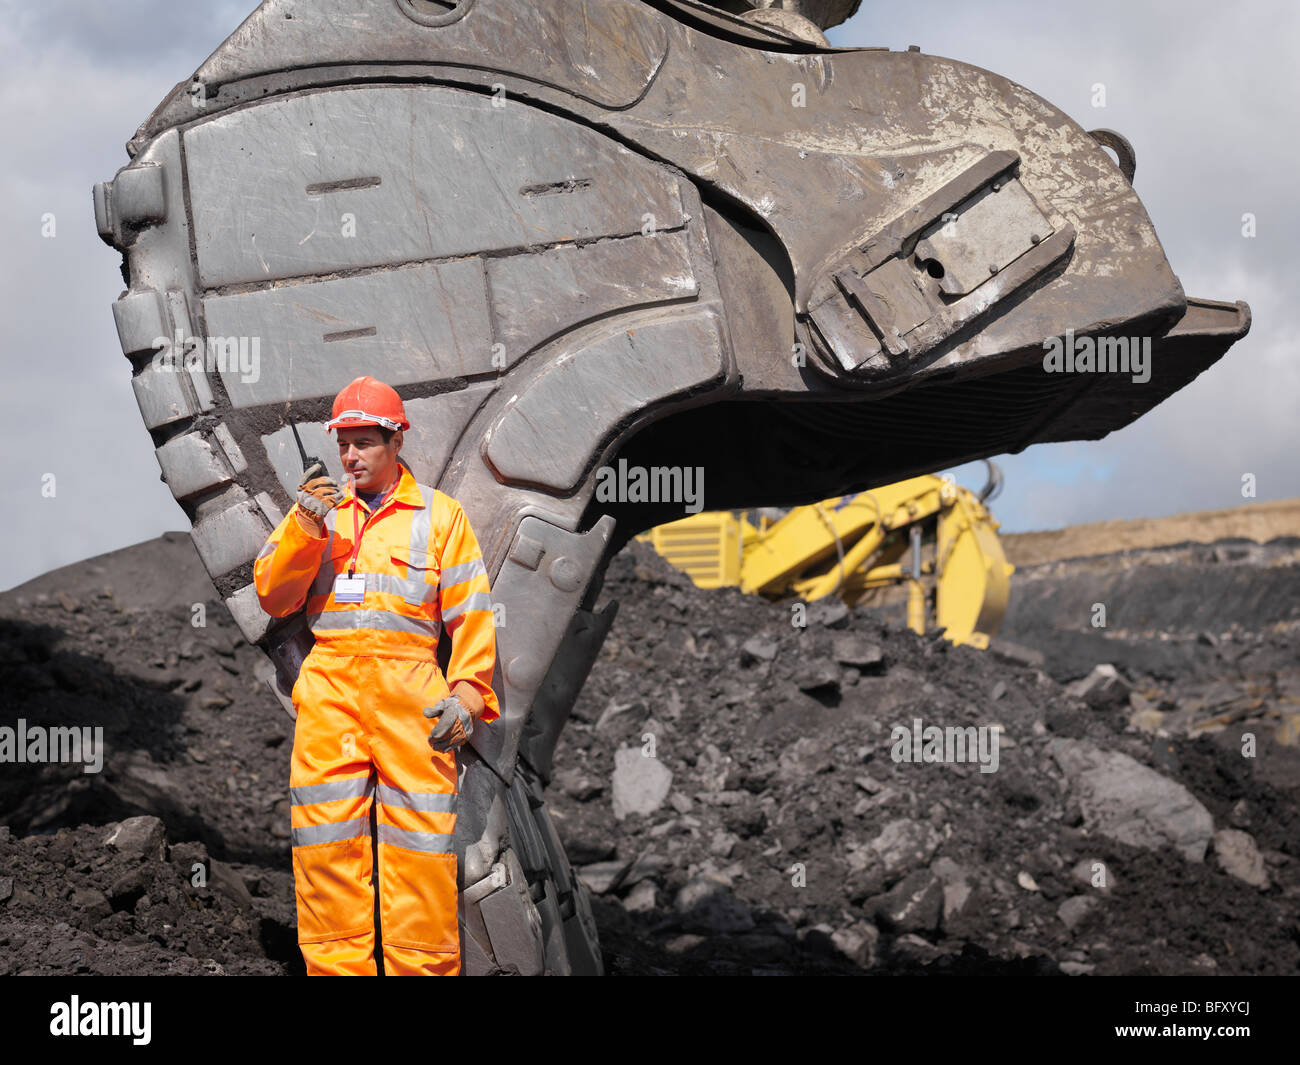 Coal Miner With Walkie Talkie - Stock Image